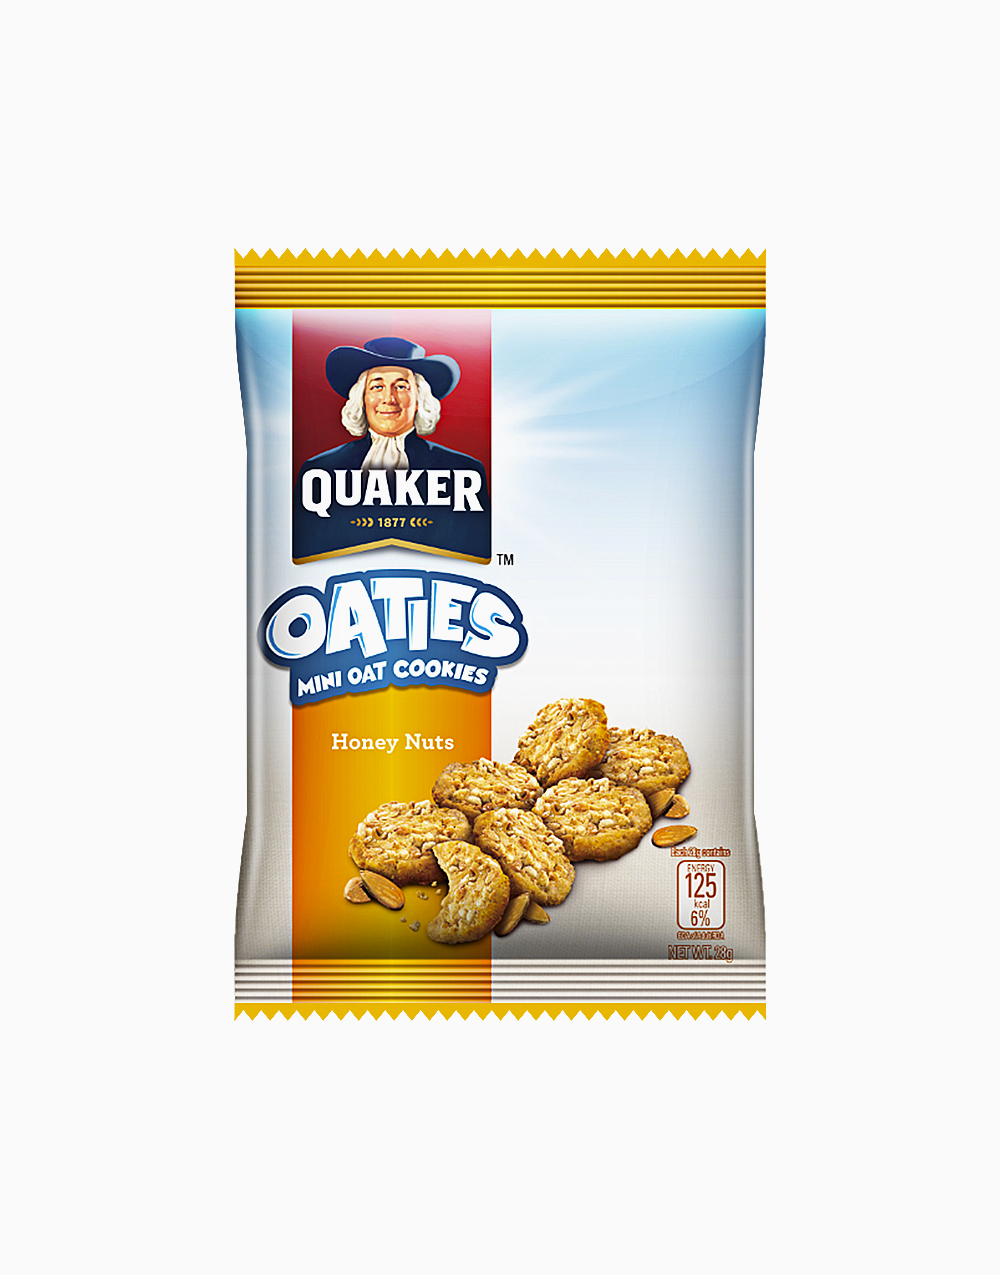 Oaties Honey Nuts (28g) by Quaker